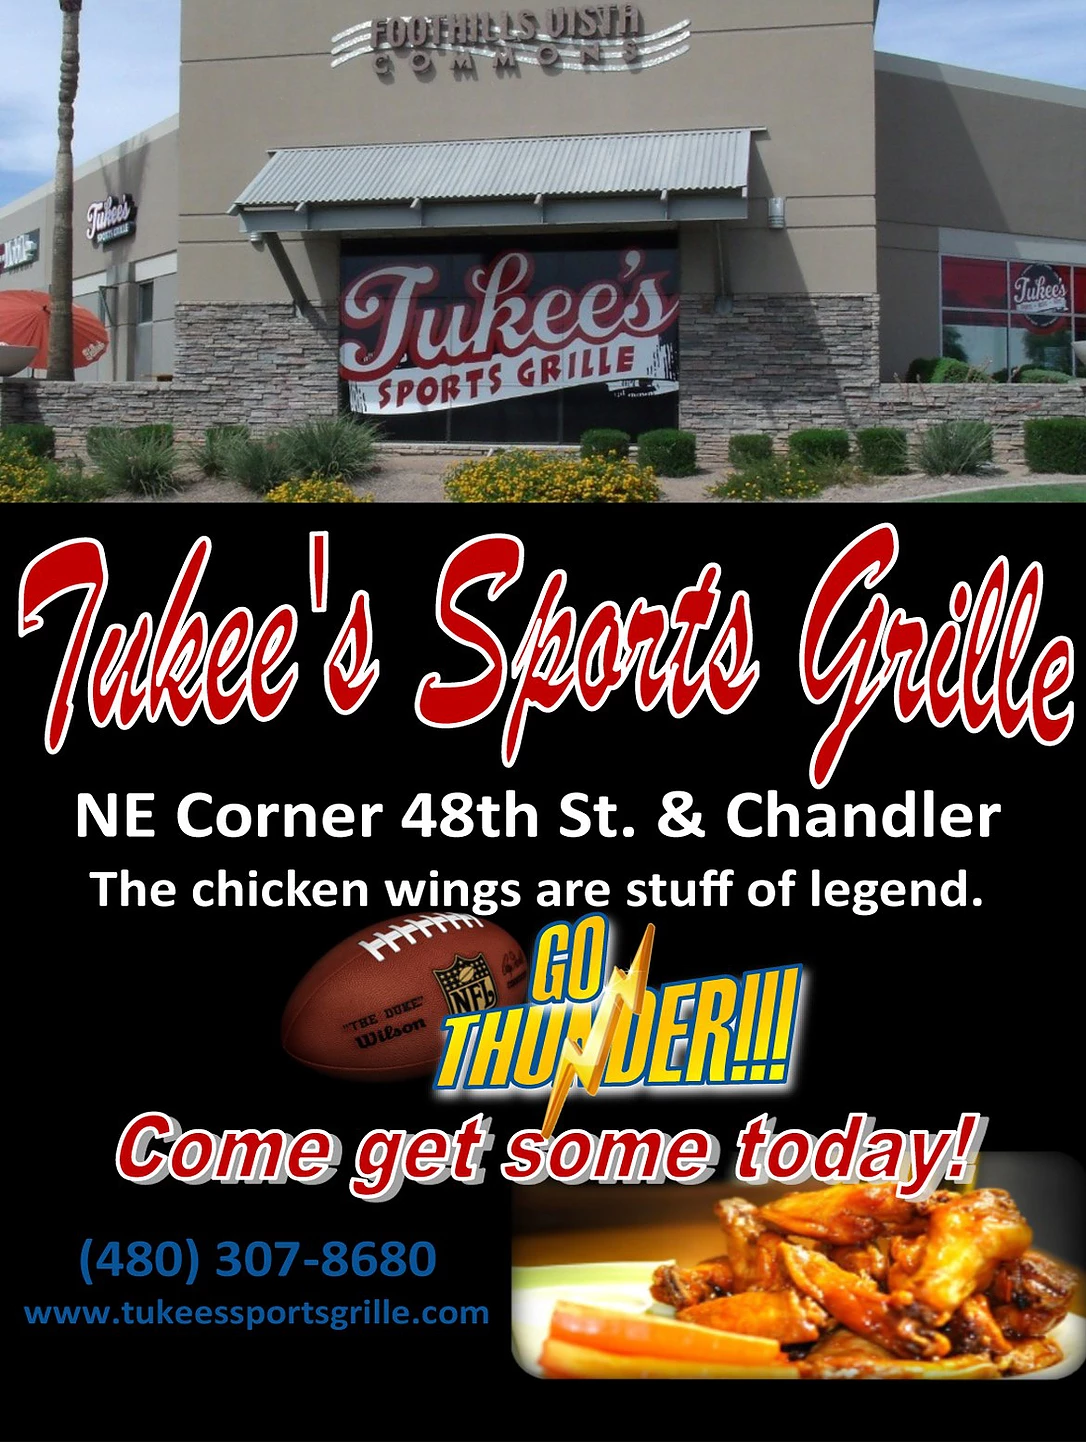 Tukees Sports Grille